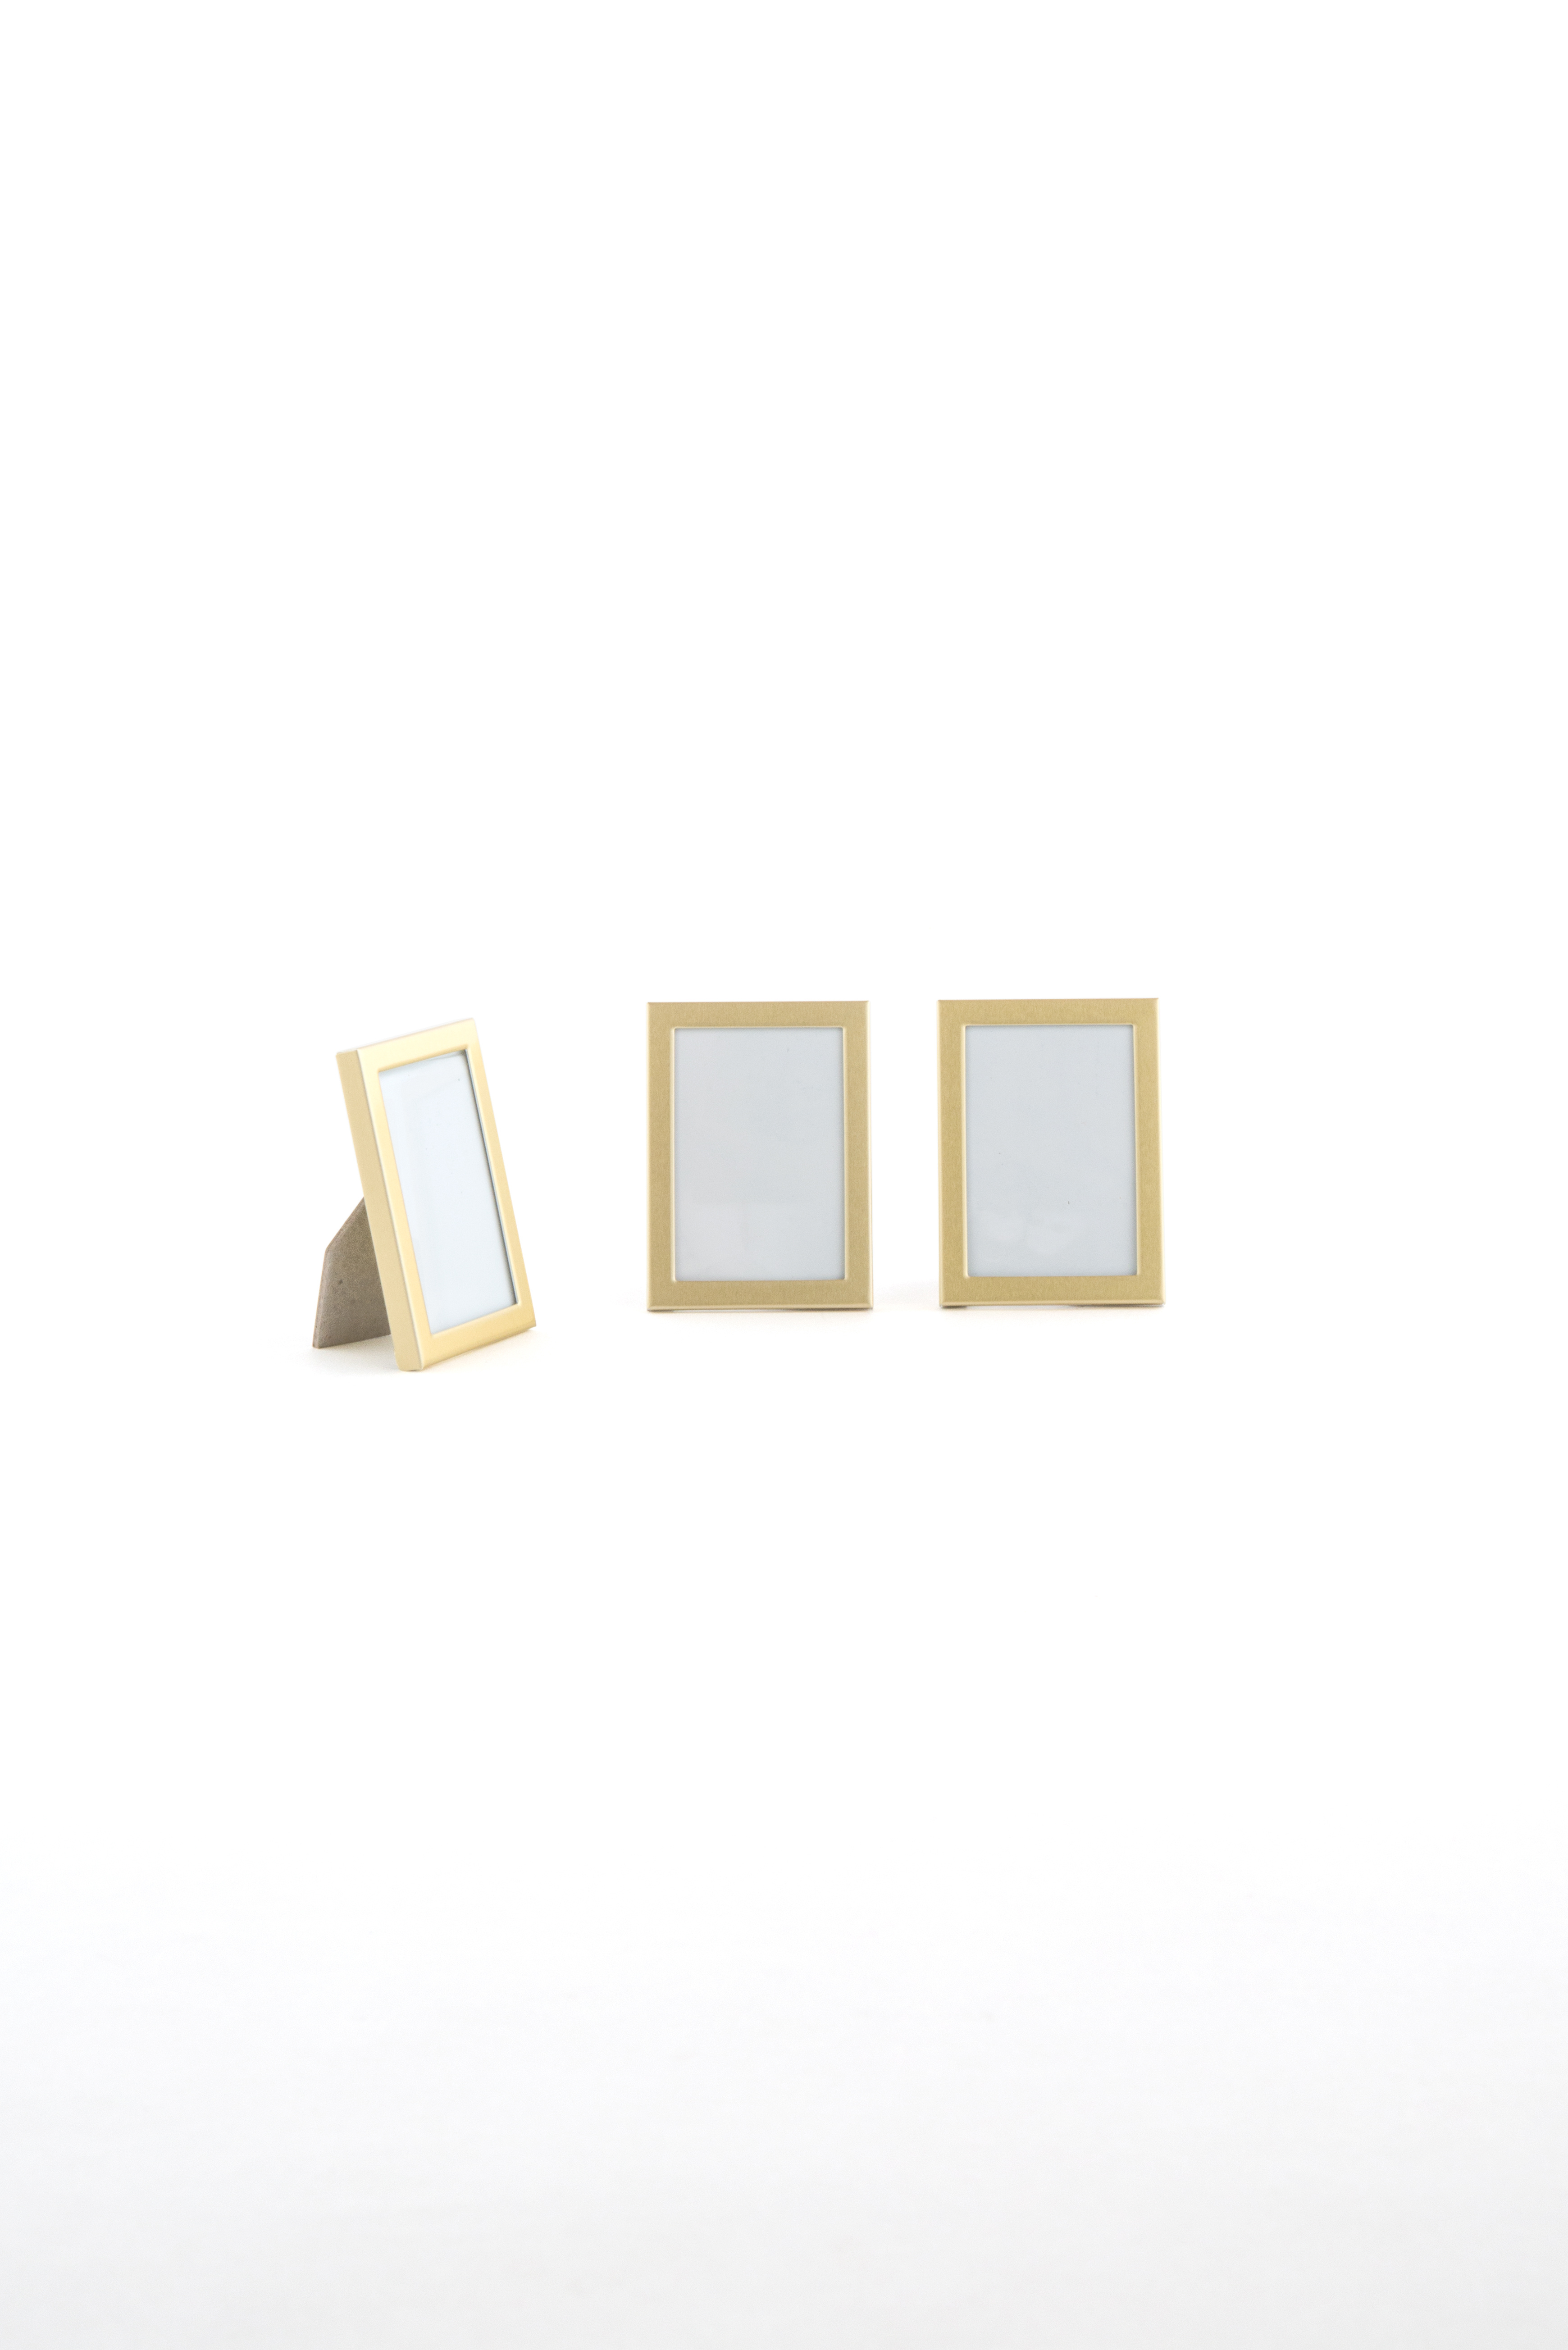 3 Photo Frames Small Easel Back Silver or Gold | eBay